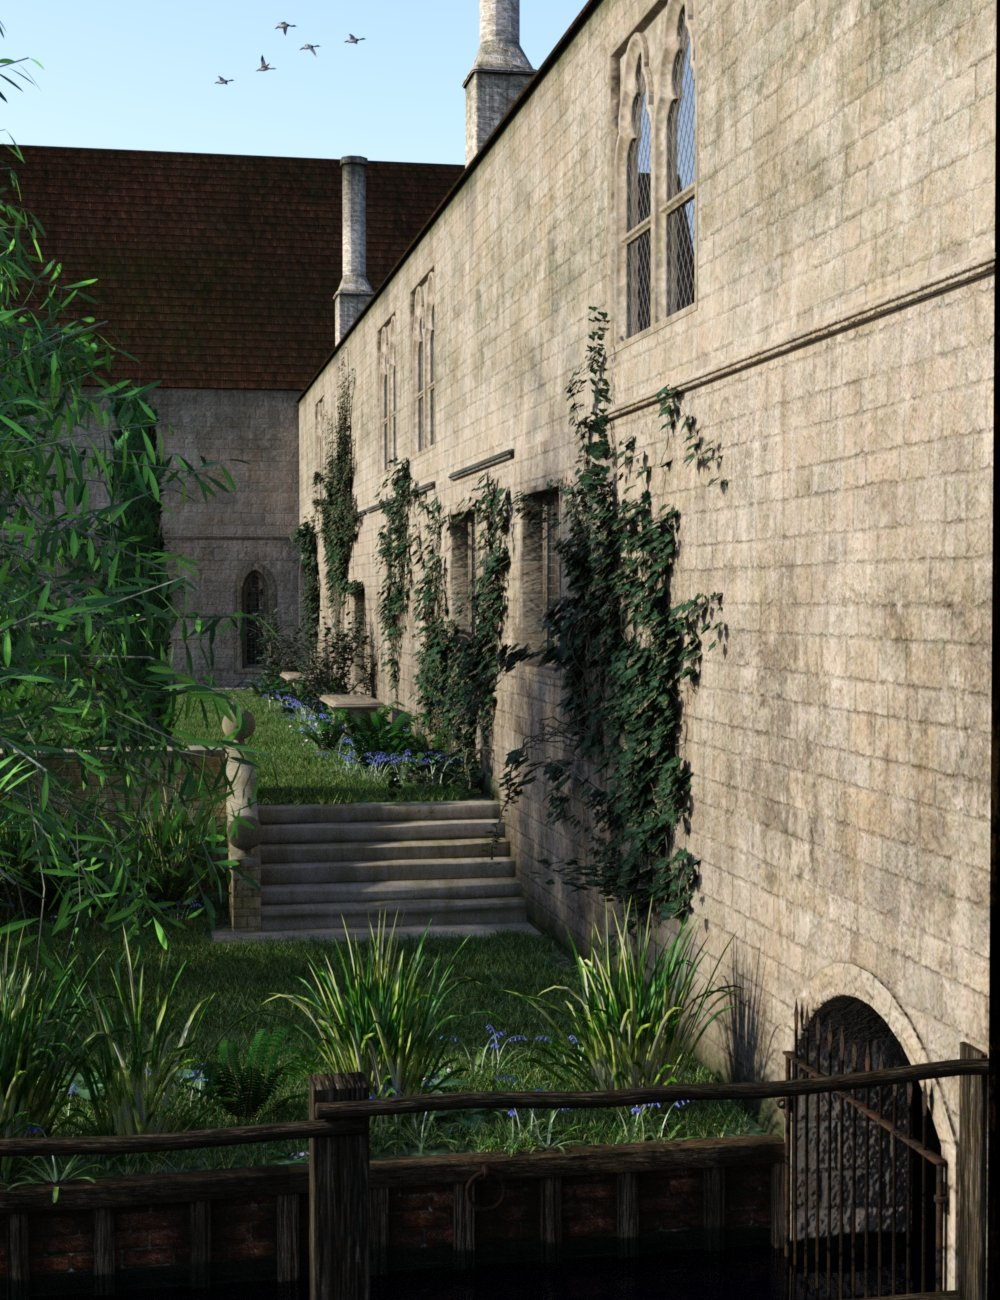 Medieval Hall and Garden by: TangoAlpha, 3D Models by Daz 3D